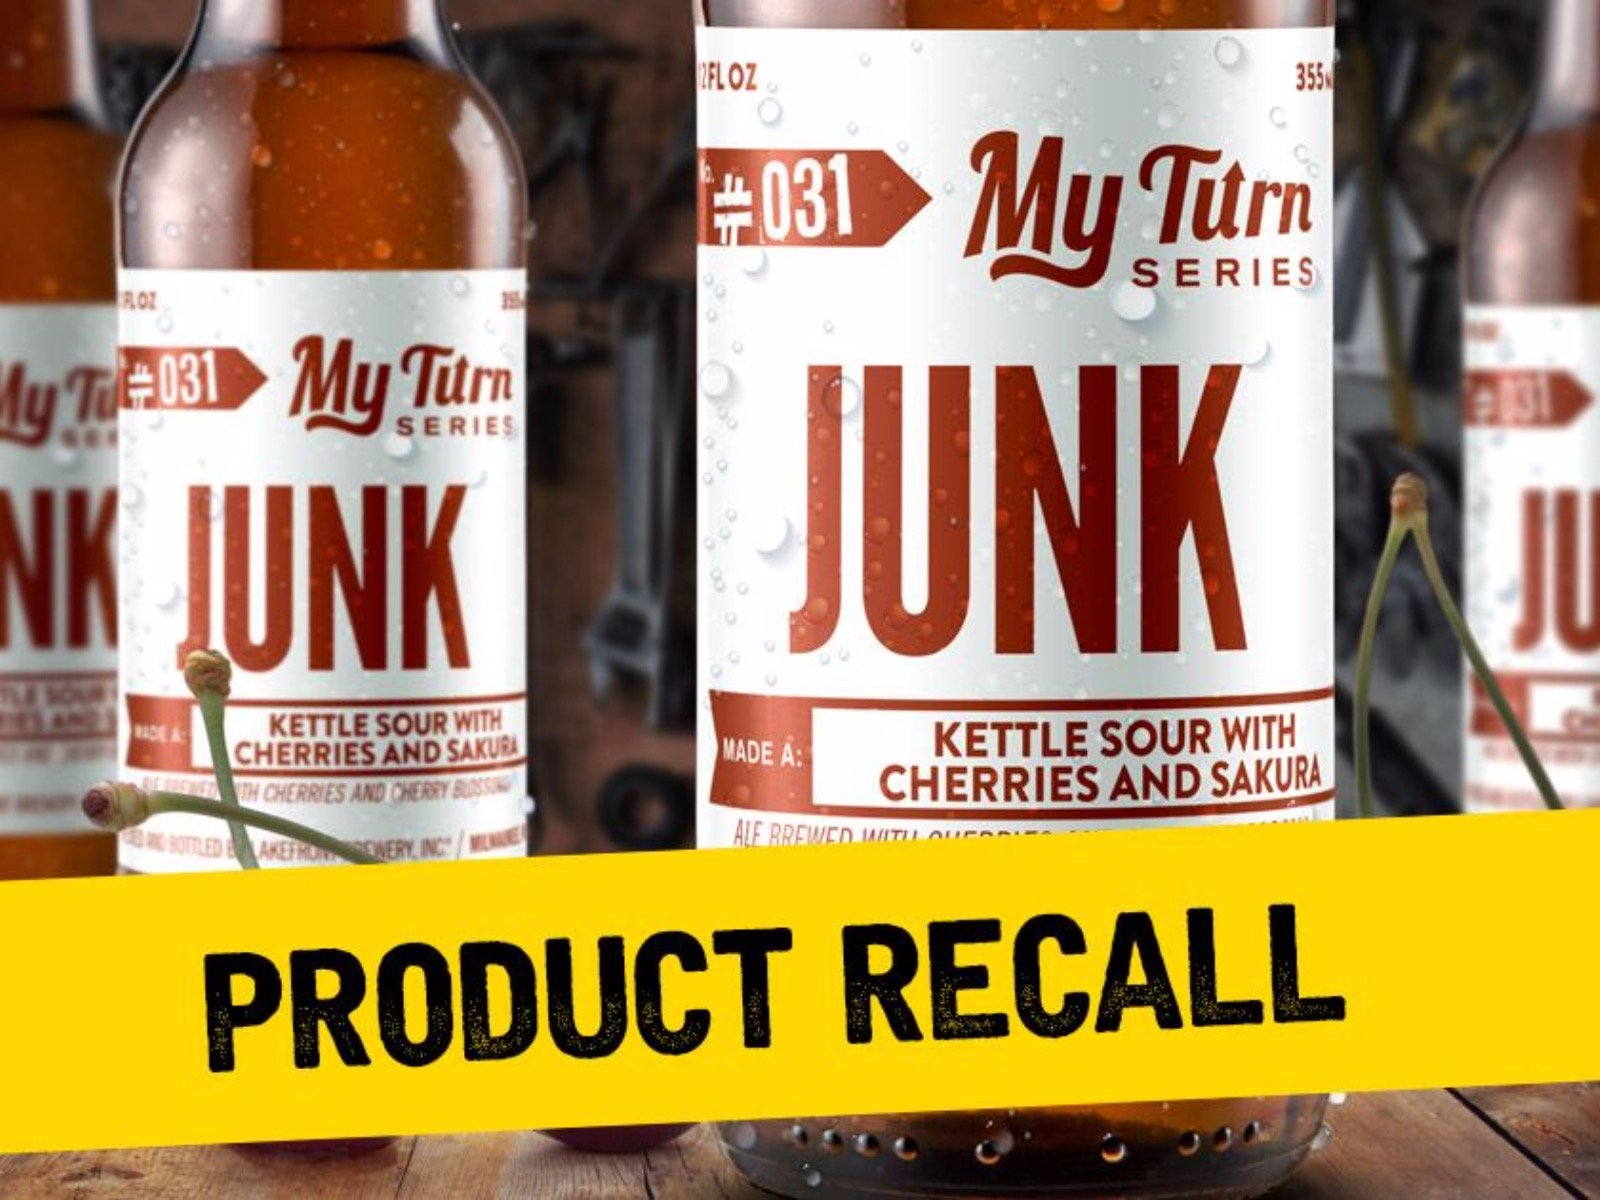 Lakefront Brewery recalls bottles of My Turn Junk due to risk of 1600x1200